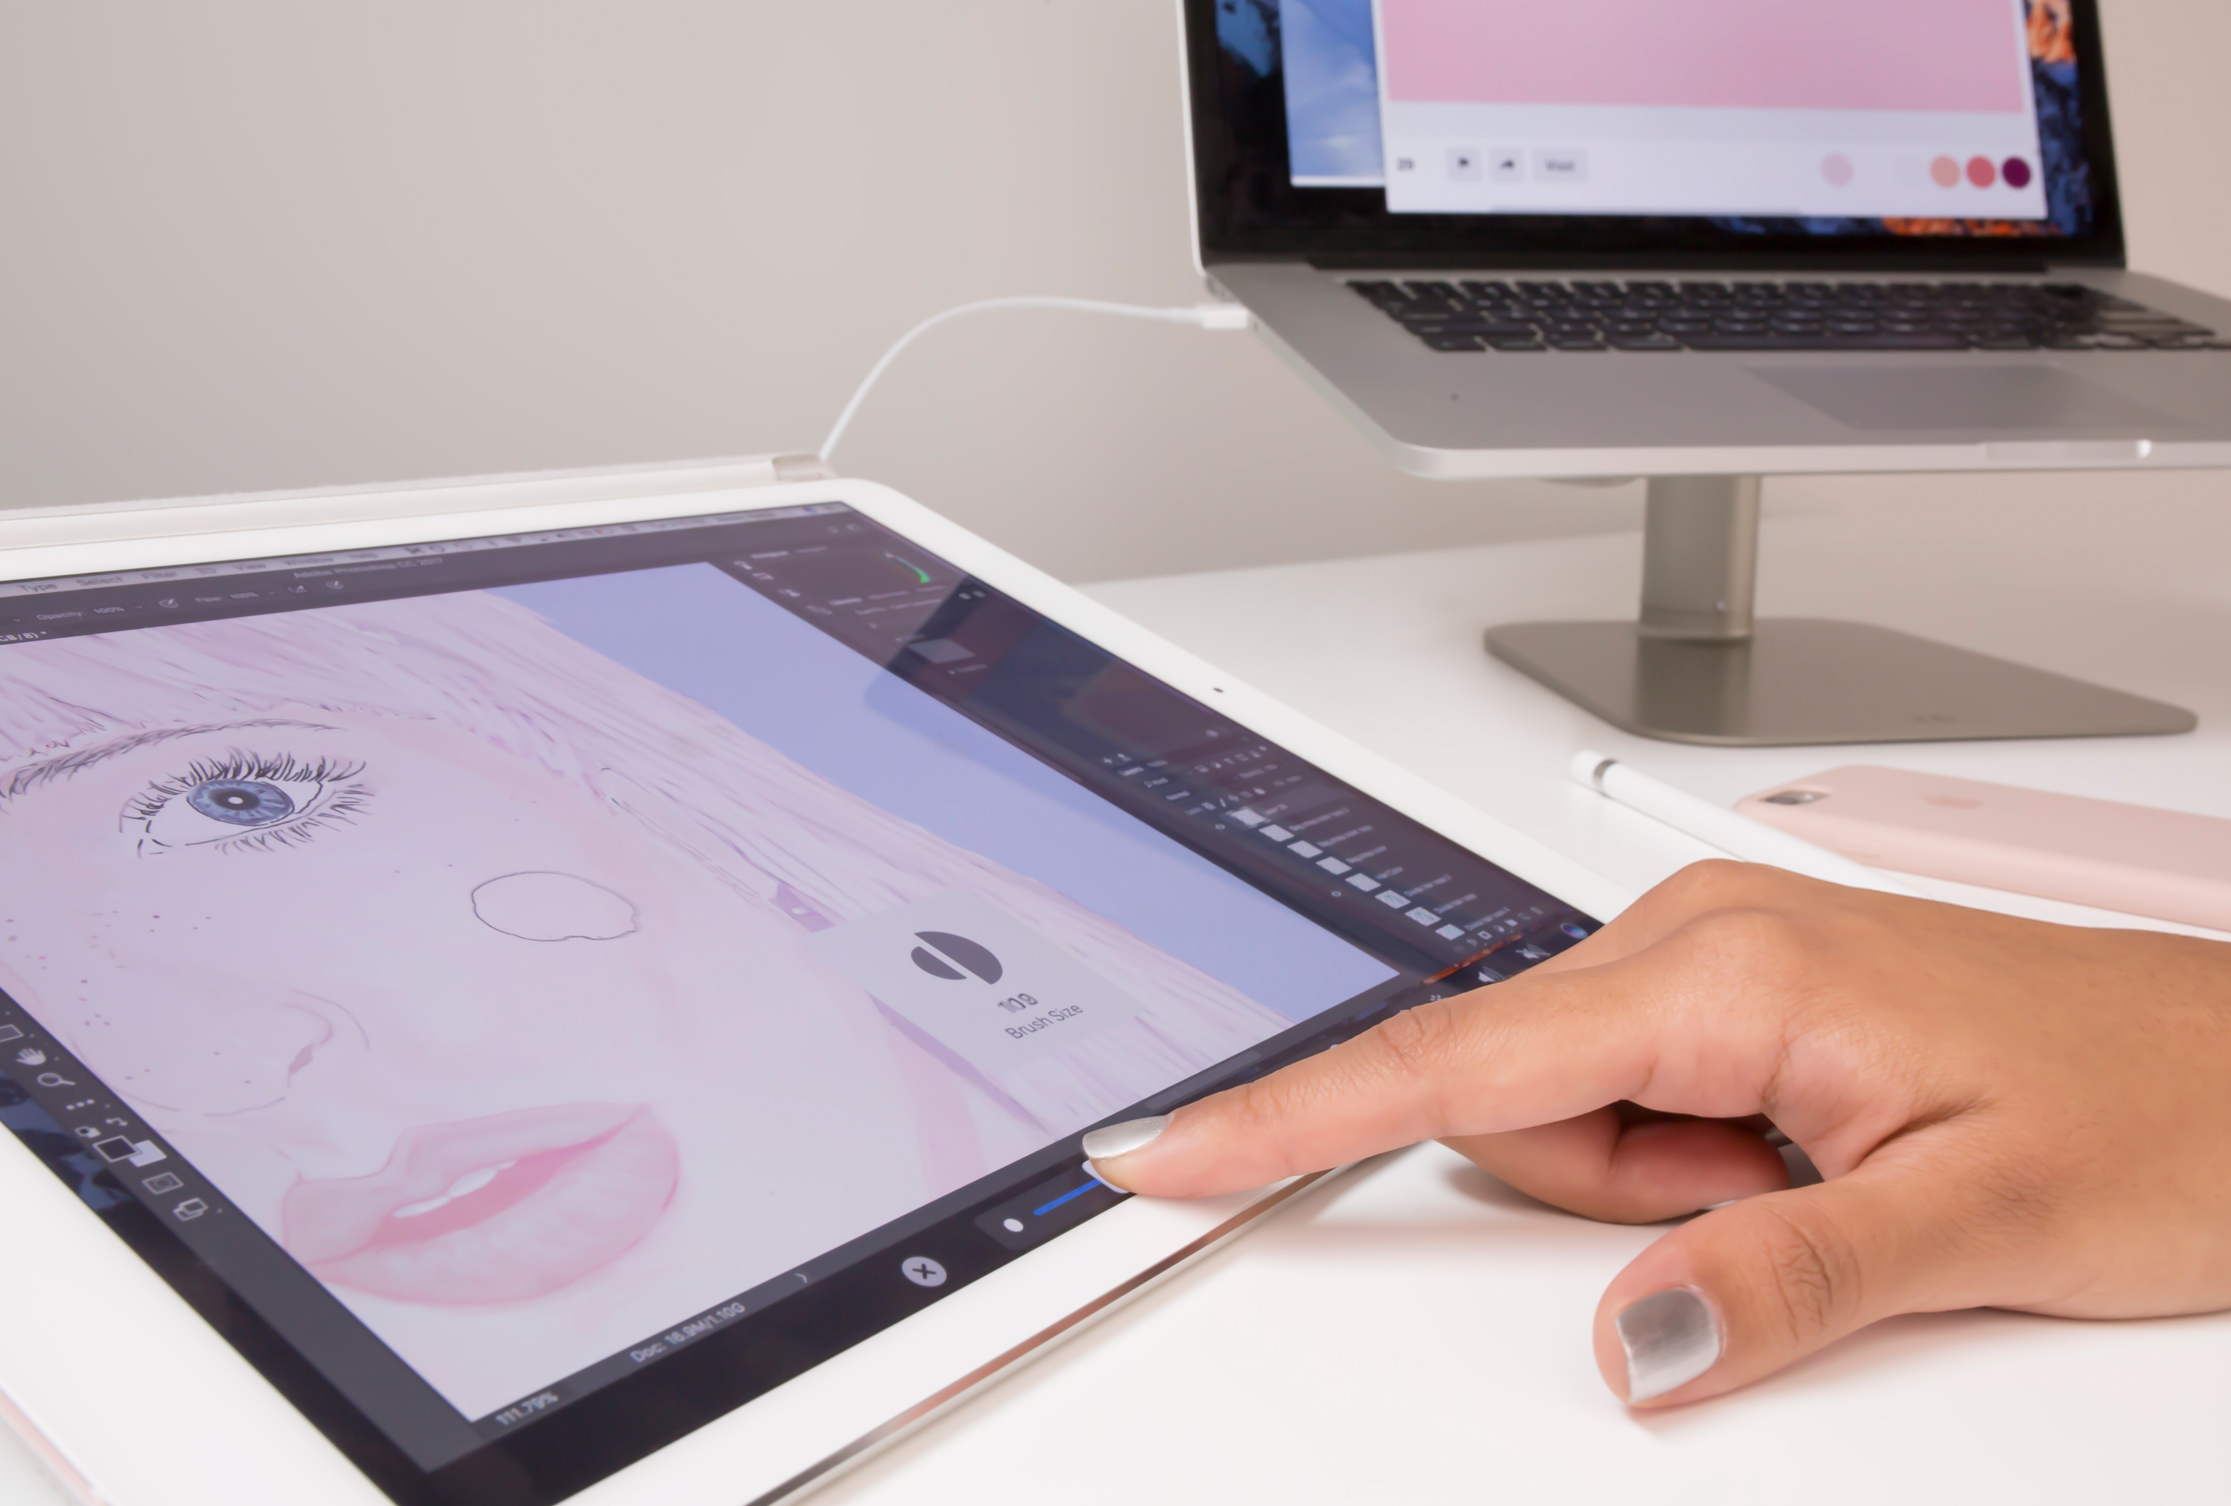 Photoshop for iPad Pro: Are Tablets Ready For Serious ...